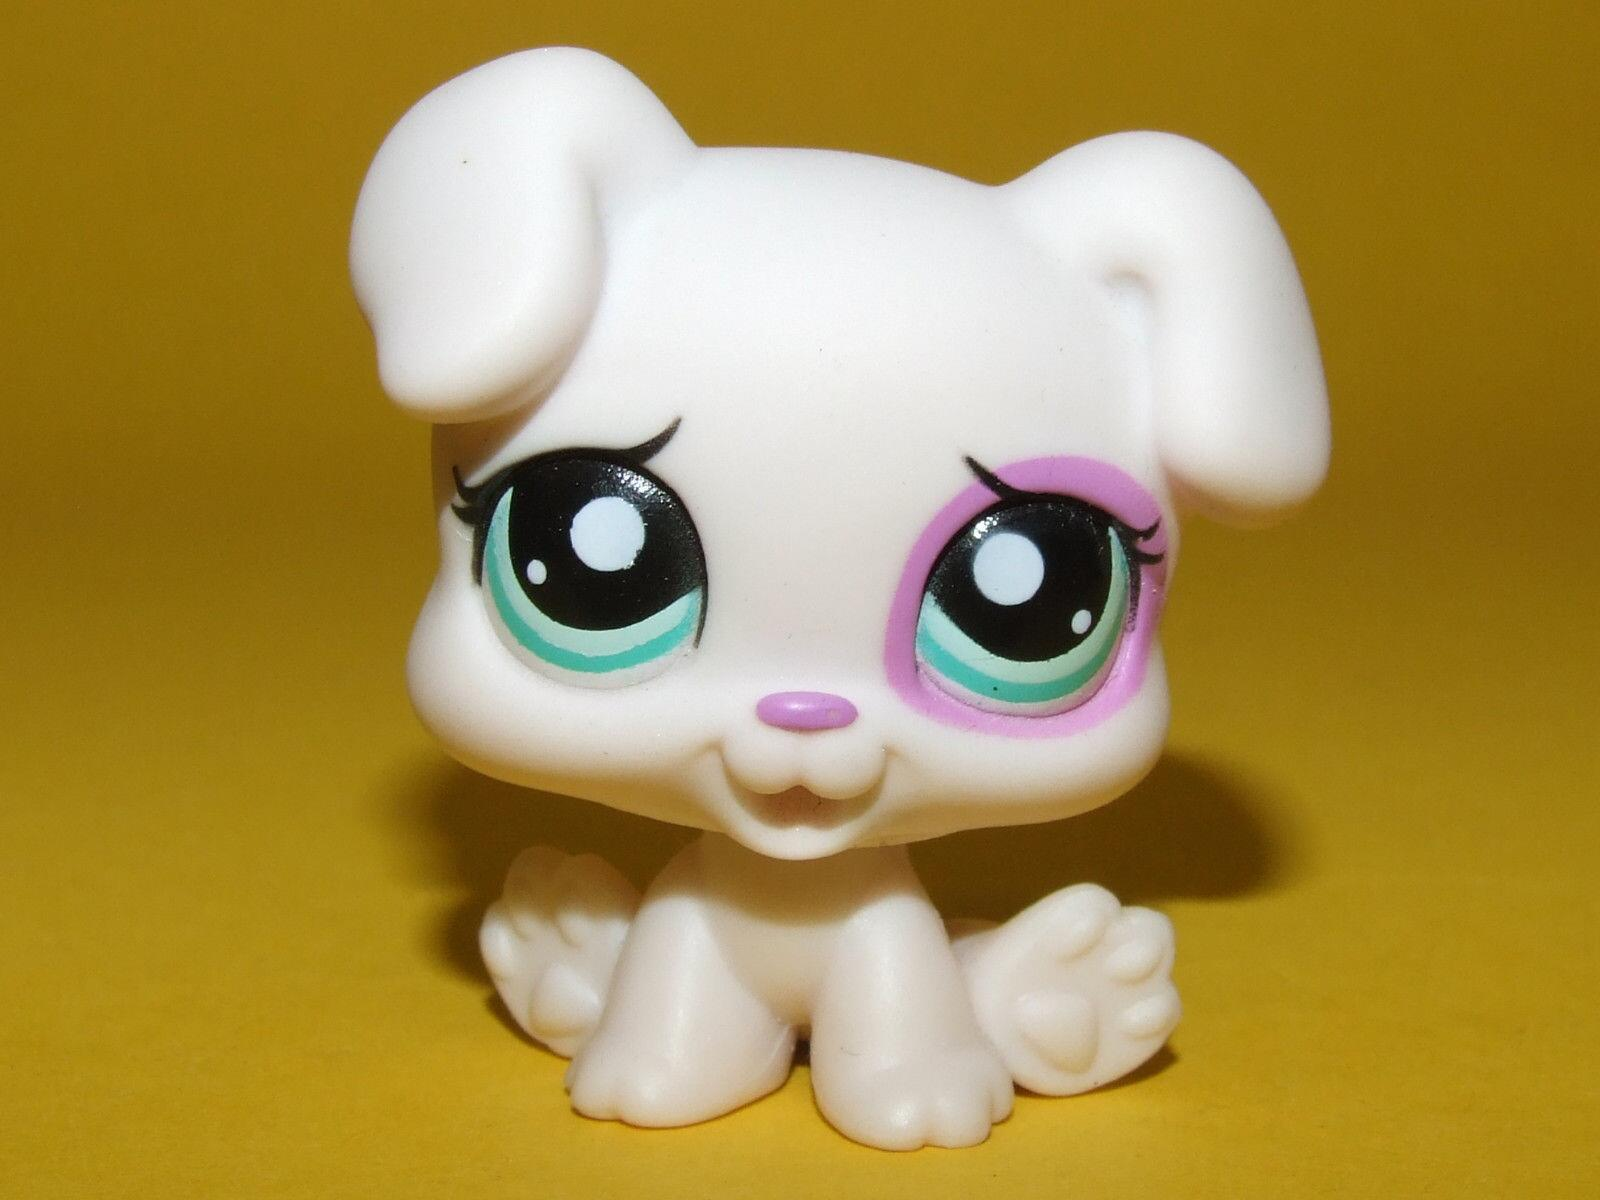 pet shop cute toys White Pink <font><b>Baby</b></font> Boxer Puppy Dog #1534 image